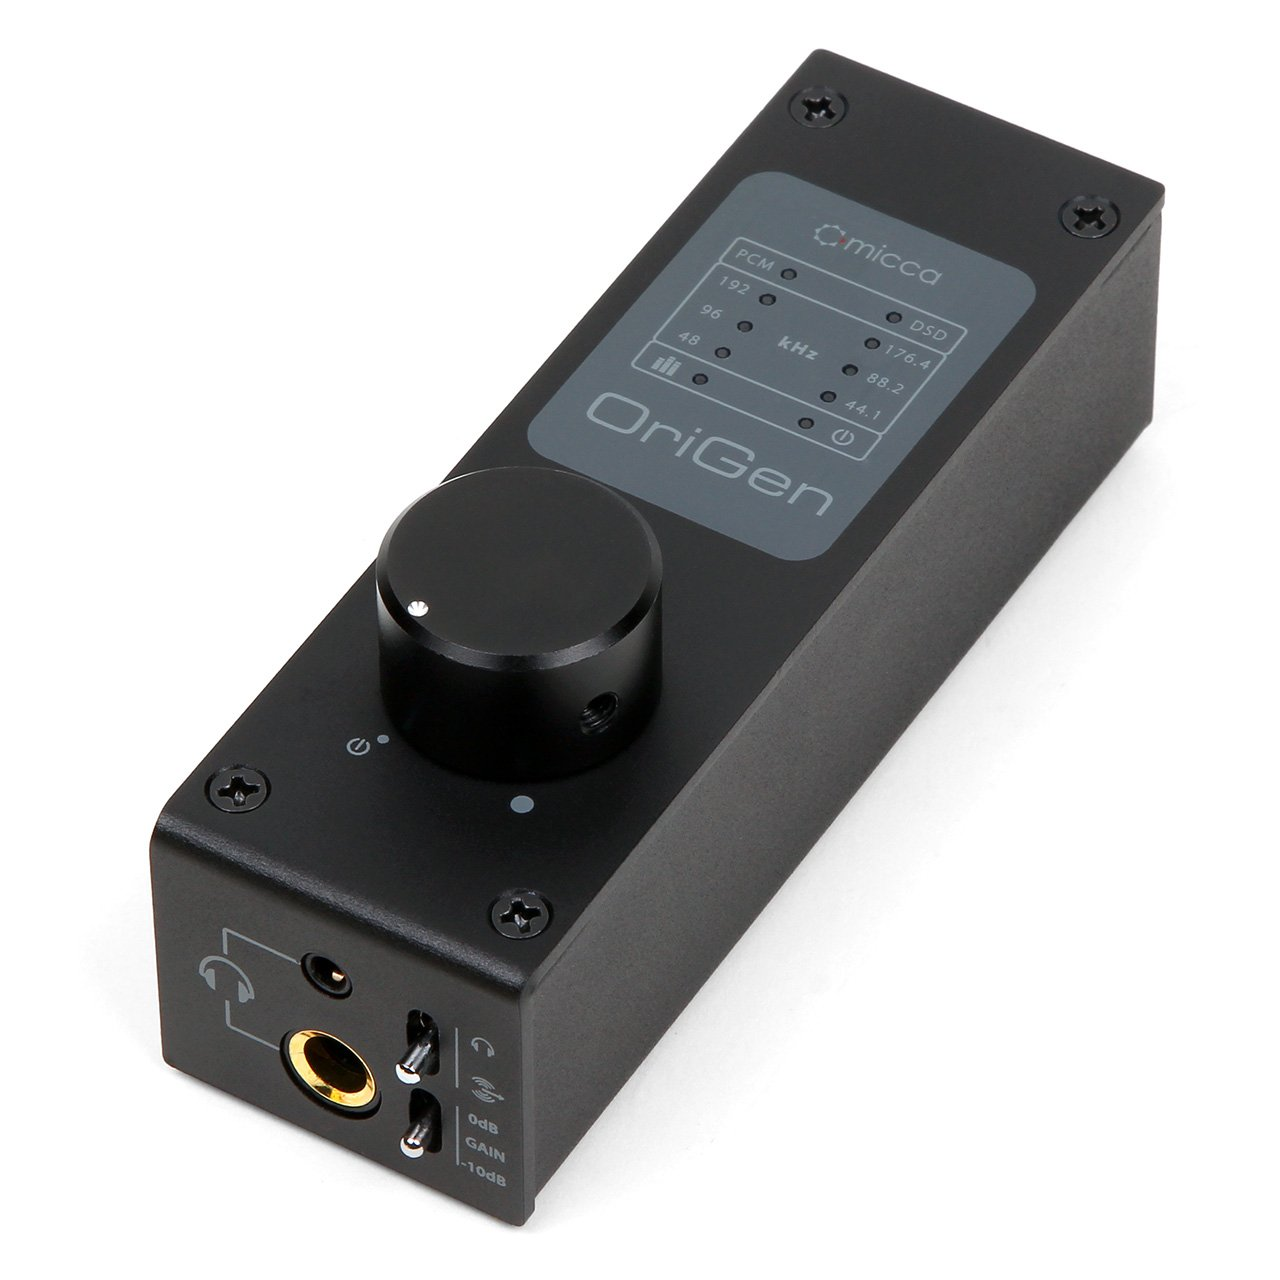 Micca OriGen+ High Resolution USB DAC and Preamplifier - 24-Bit/192kHz PCM and 64x DSD